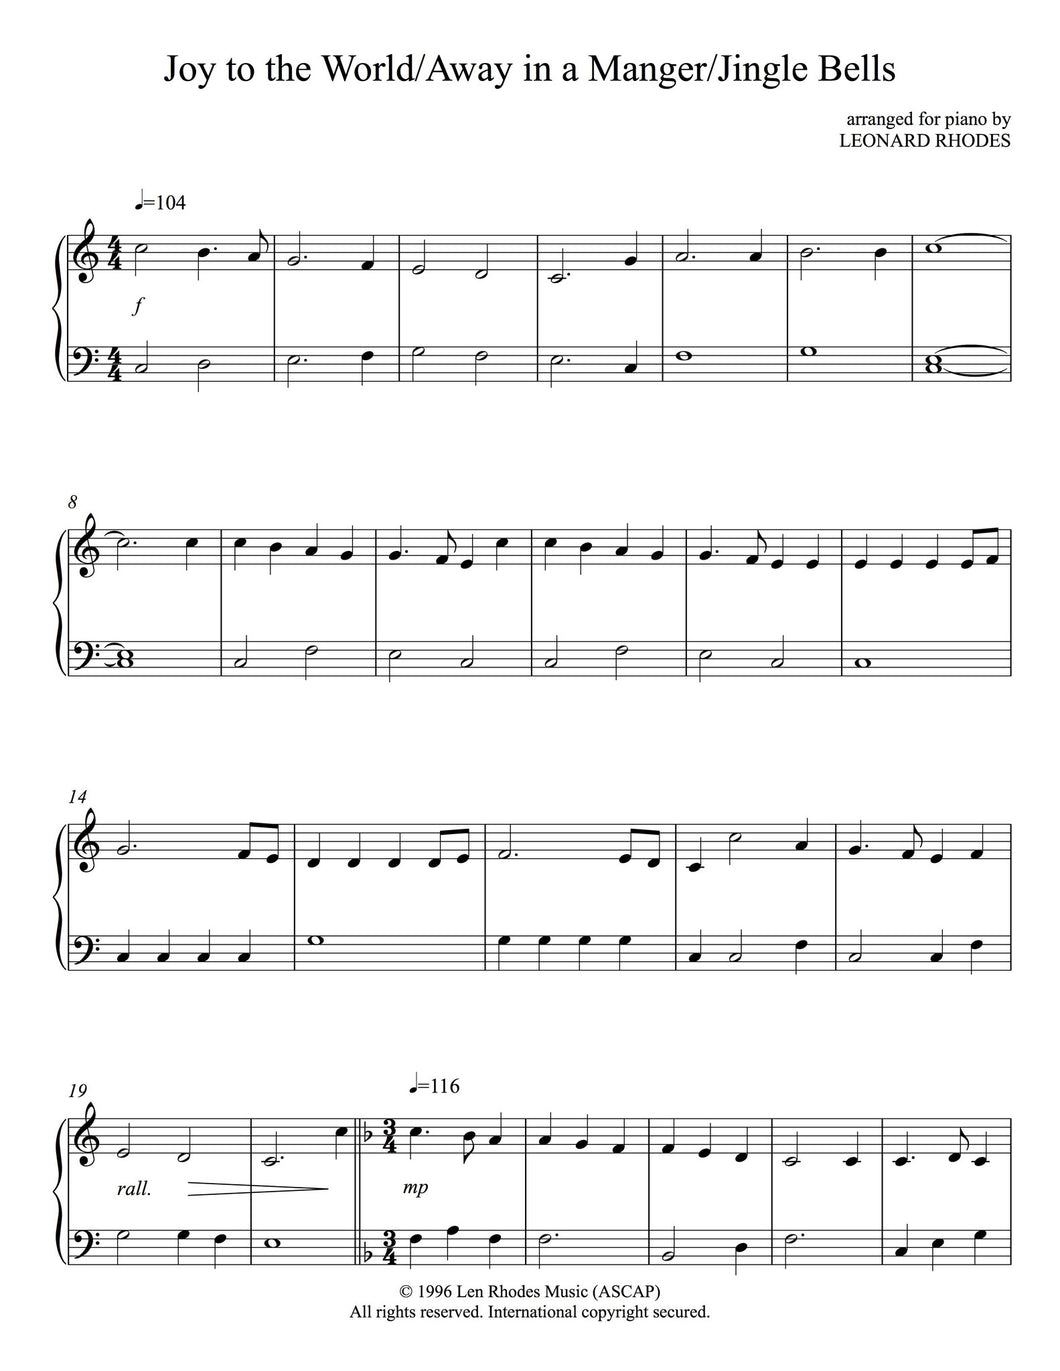 Medley of Christmas Carols - Joy to the World/Away in a Manger/Jingle Bells, arranged for Easy Piano